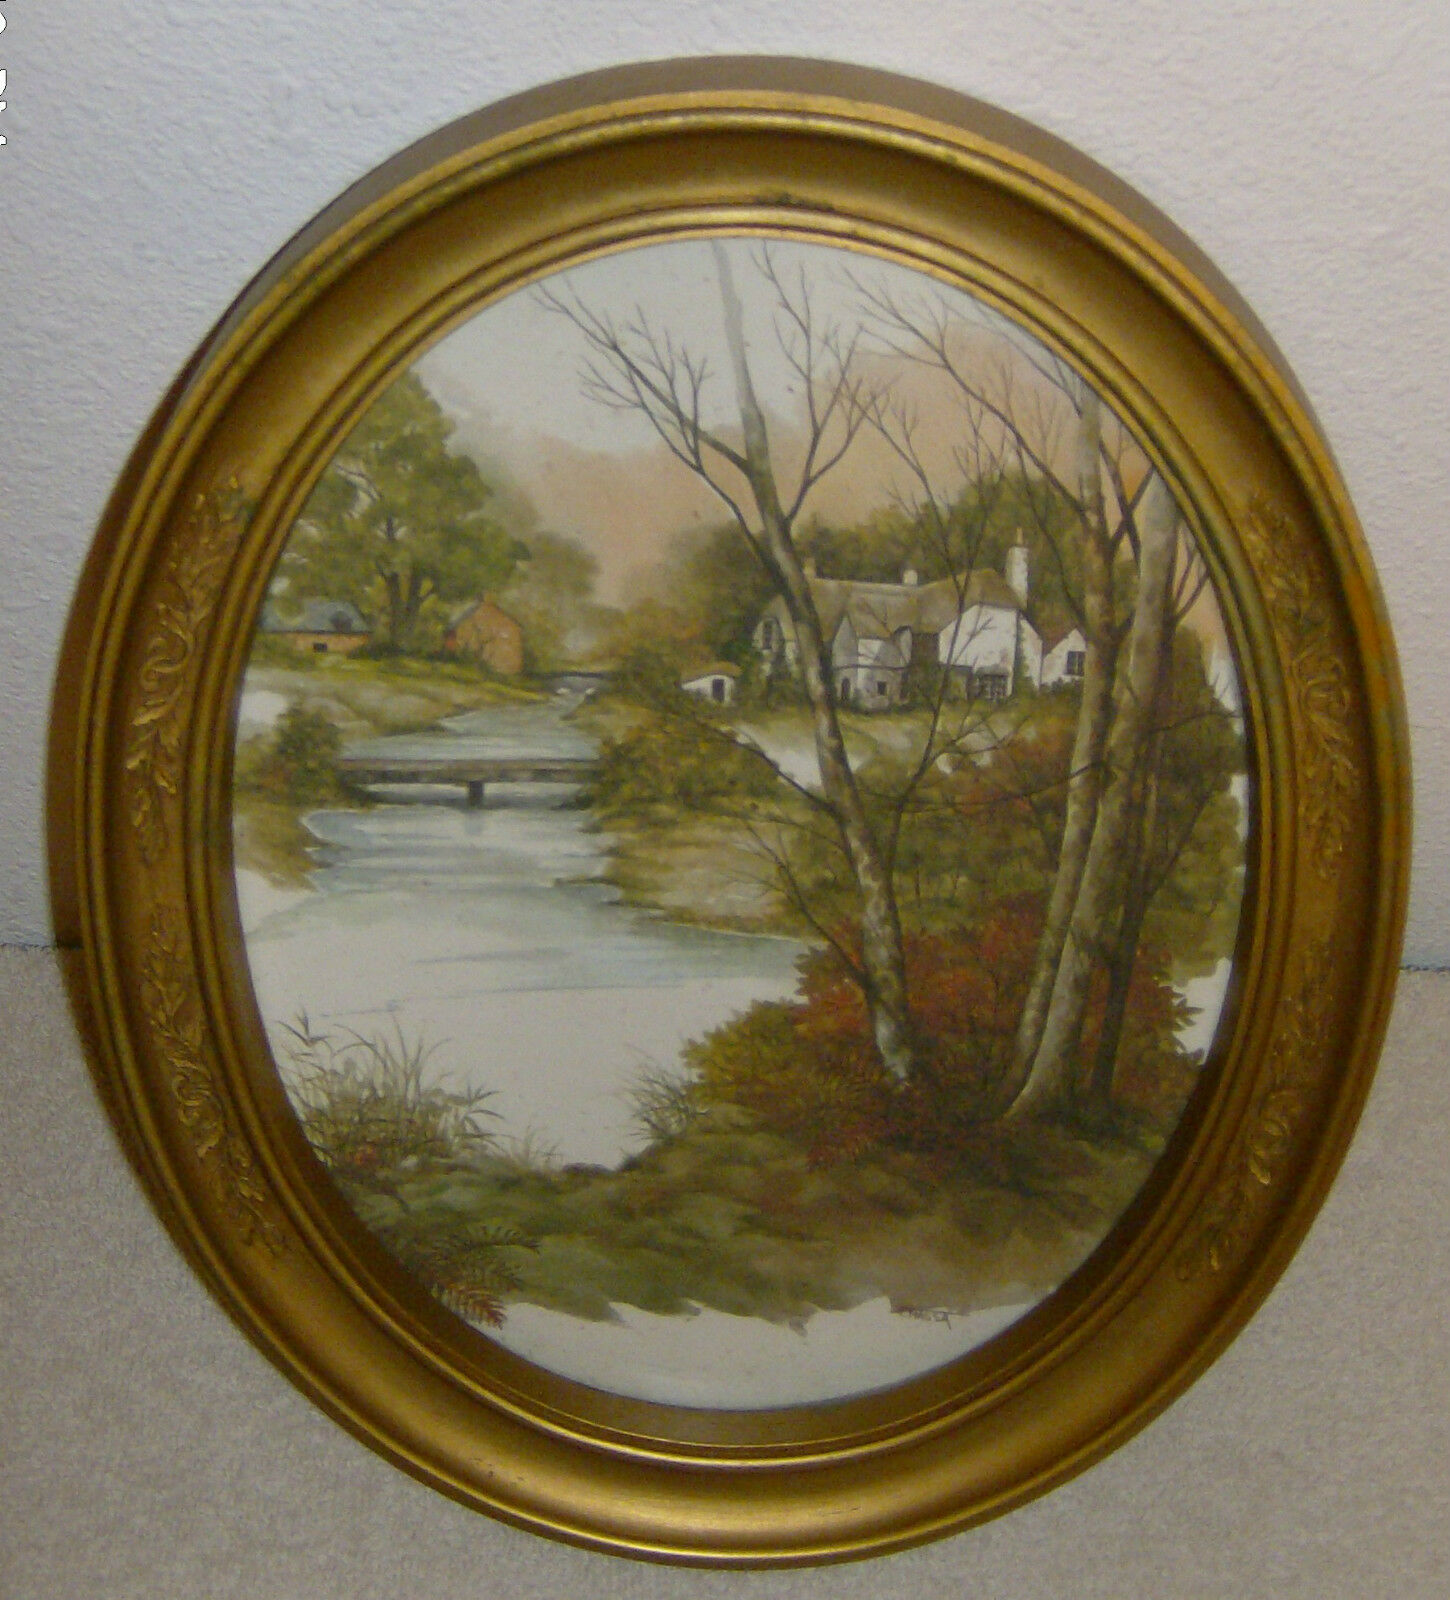 Homco Home Interior Picture Gold Oval Frame House Lake Water Vintage ...